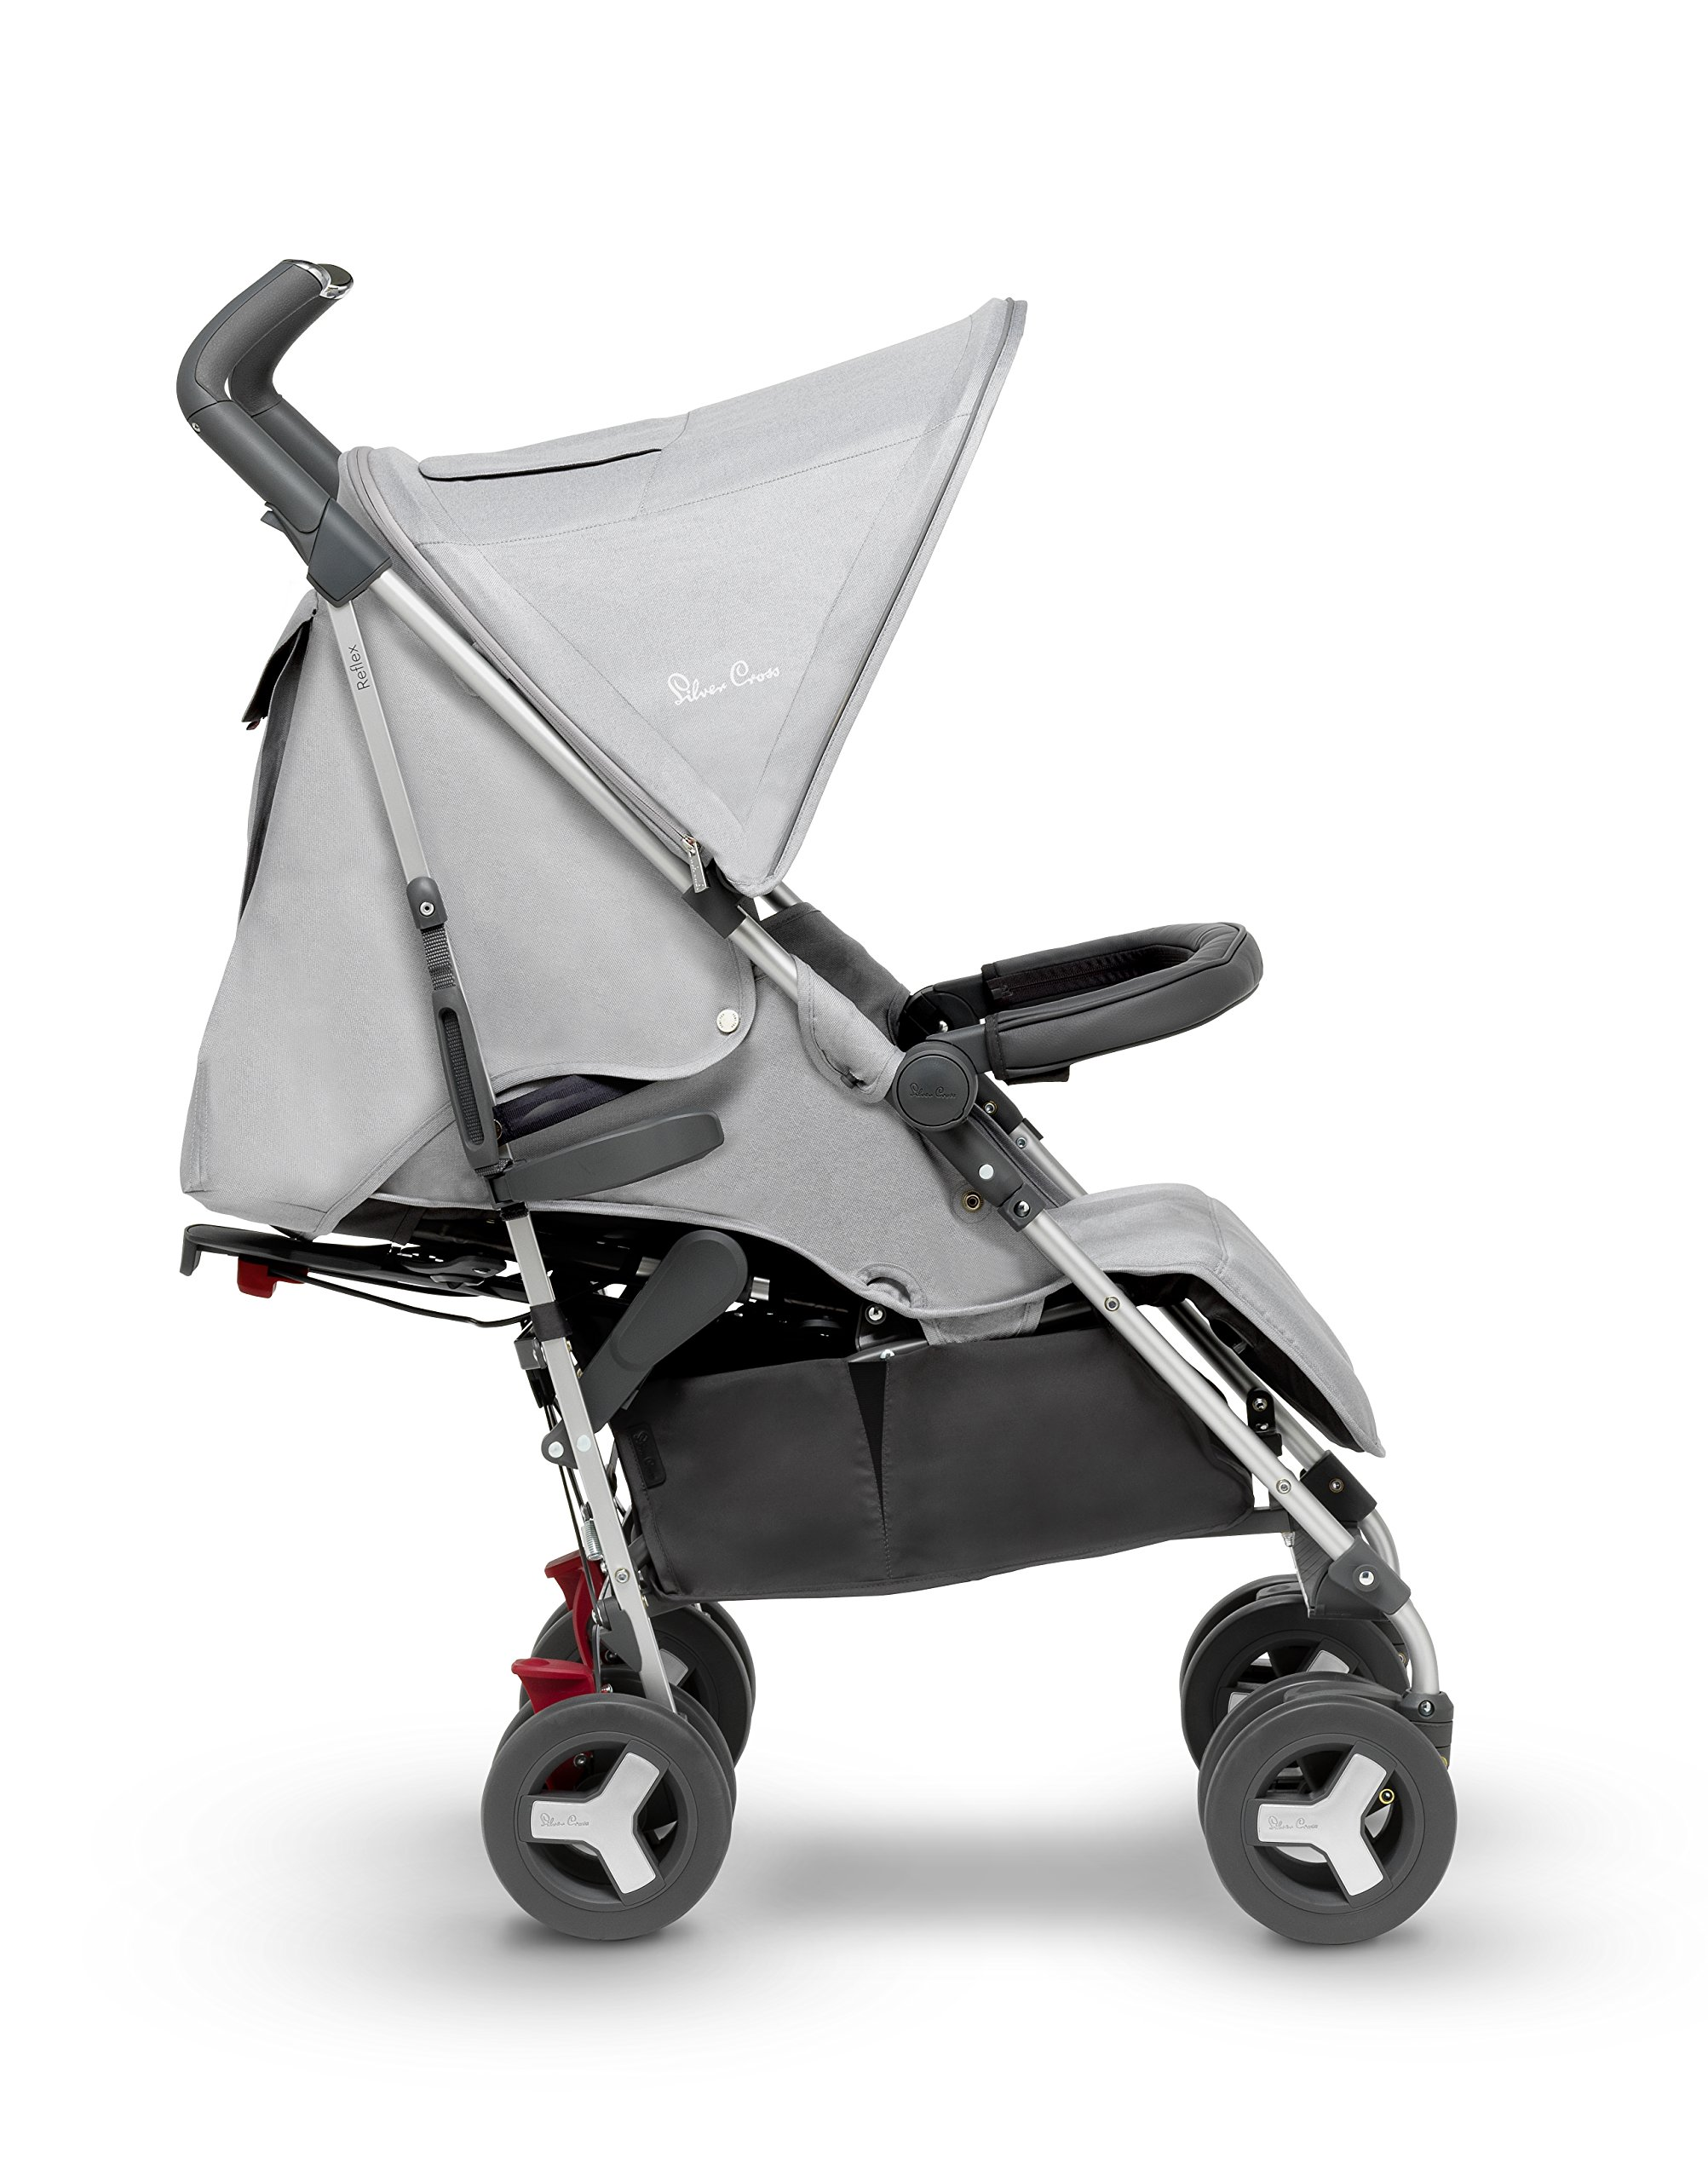 Silver Cross Reflex Stroller, Platinum Silver Cross Reflex is an advanced stroller, suitable from birth up to 25kg, with a wealth of features 5-point Harness Combine with Silver Cross Simplicity Car Seat to create a convenient Travel System 1